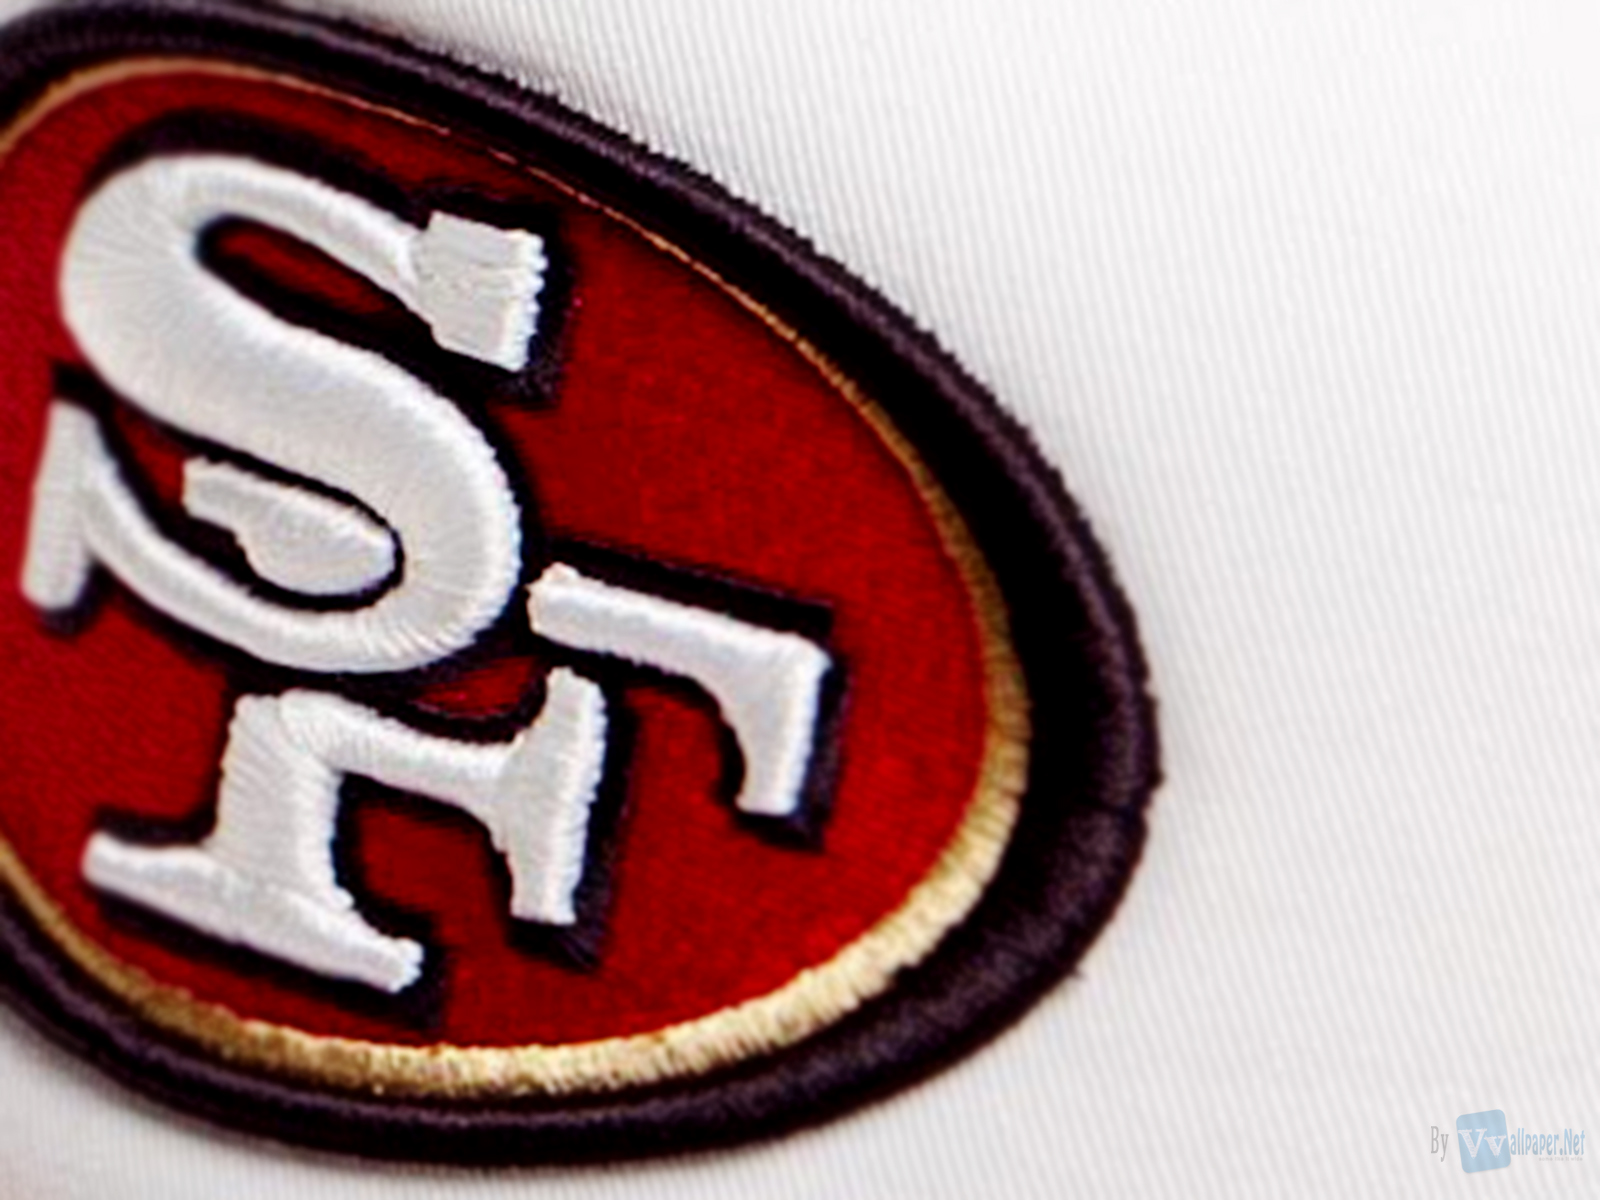 tattoo designs and tattoo fonts 49ers wallpapers HD 1600x1200